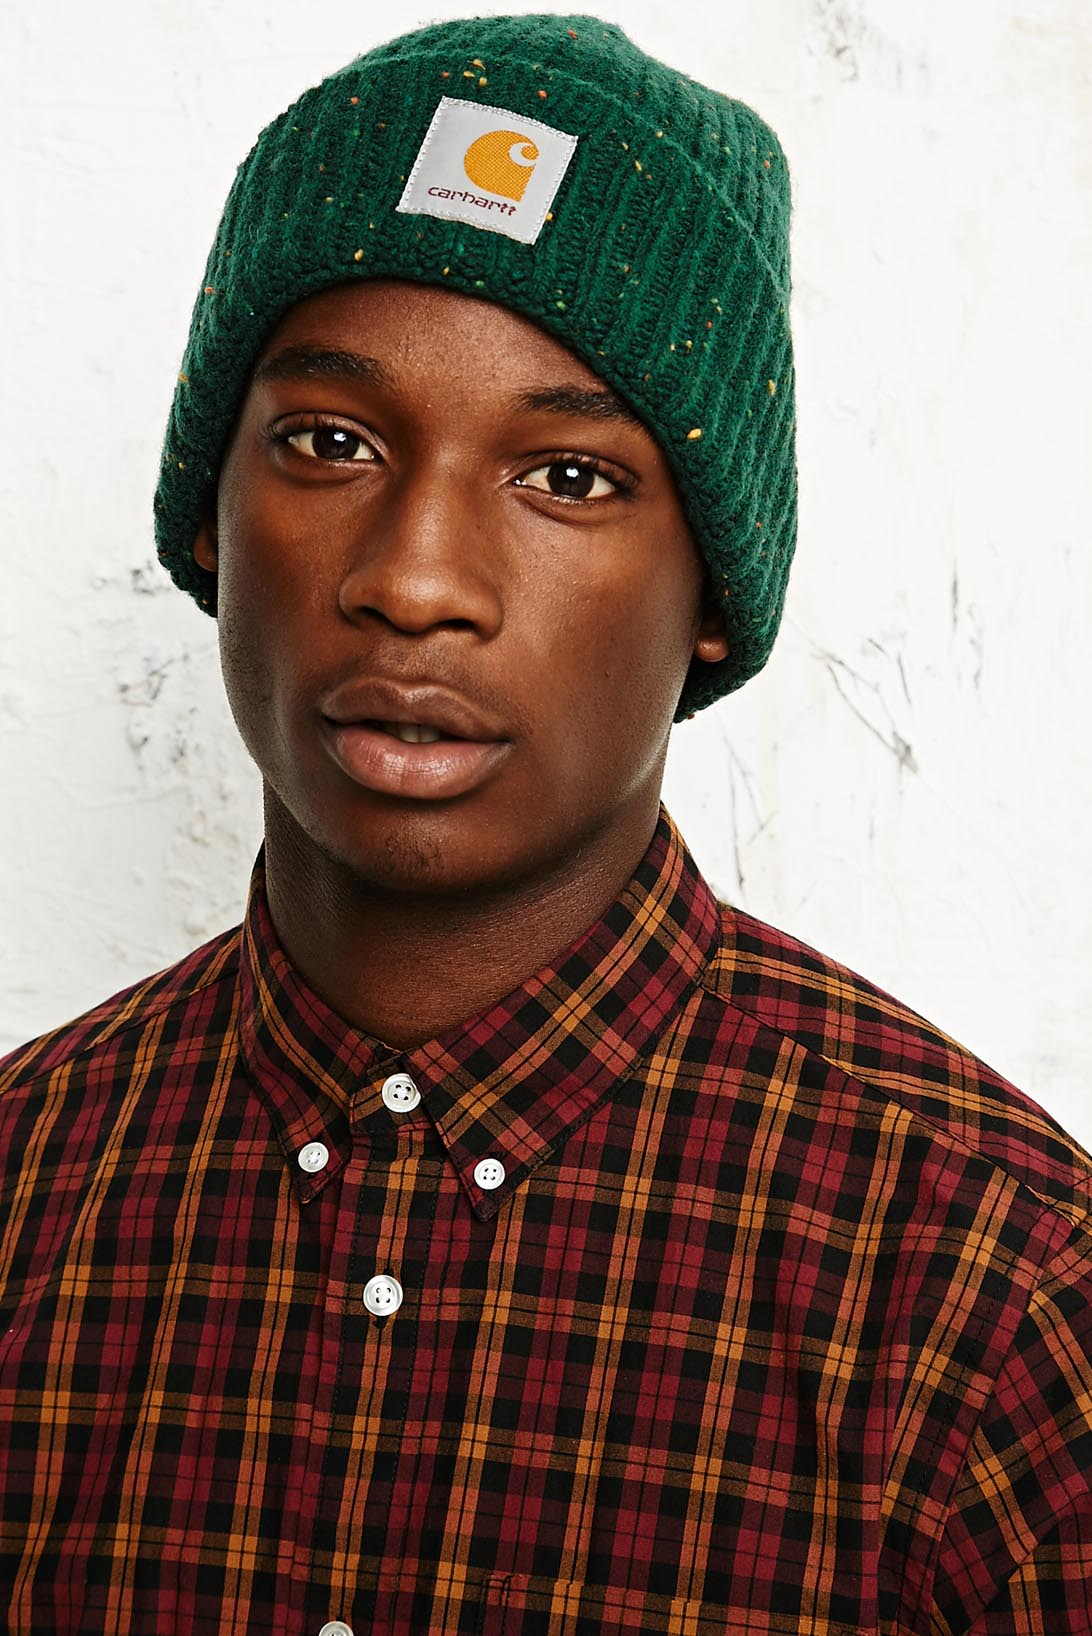 35670697d40 Carhartt Anglistic Beanie Hat In Green In Green For Men Lyst